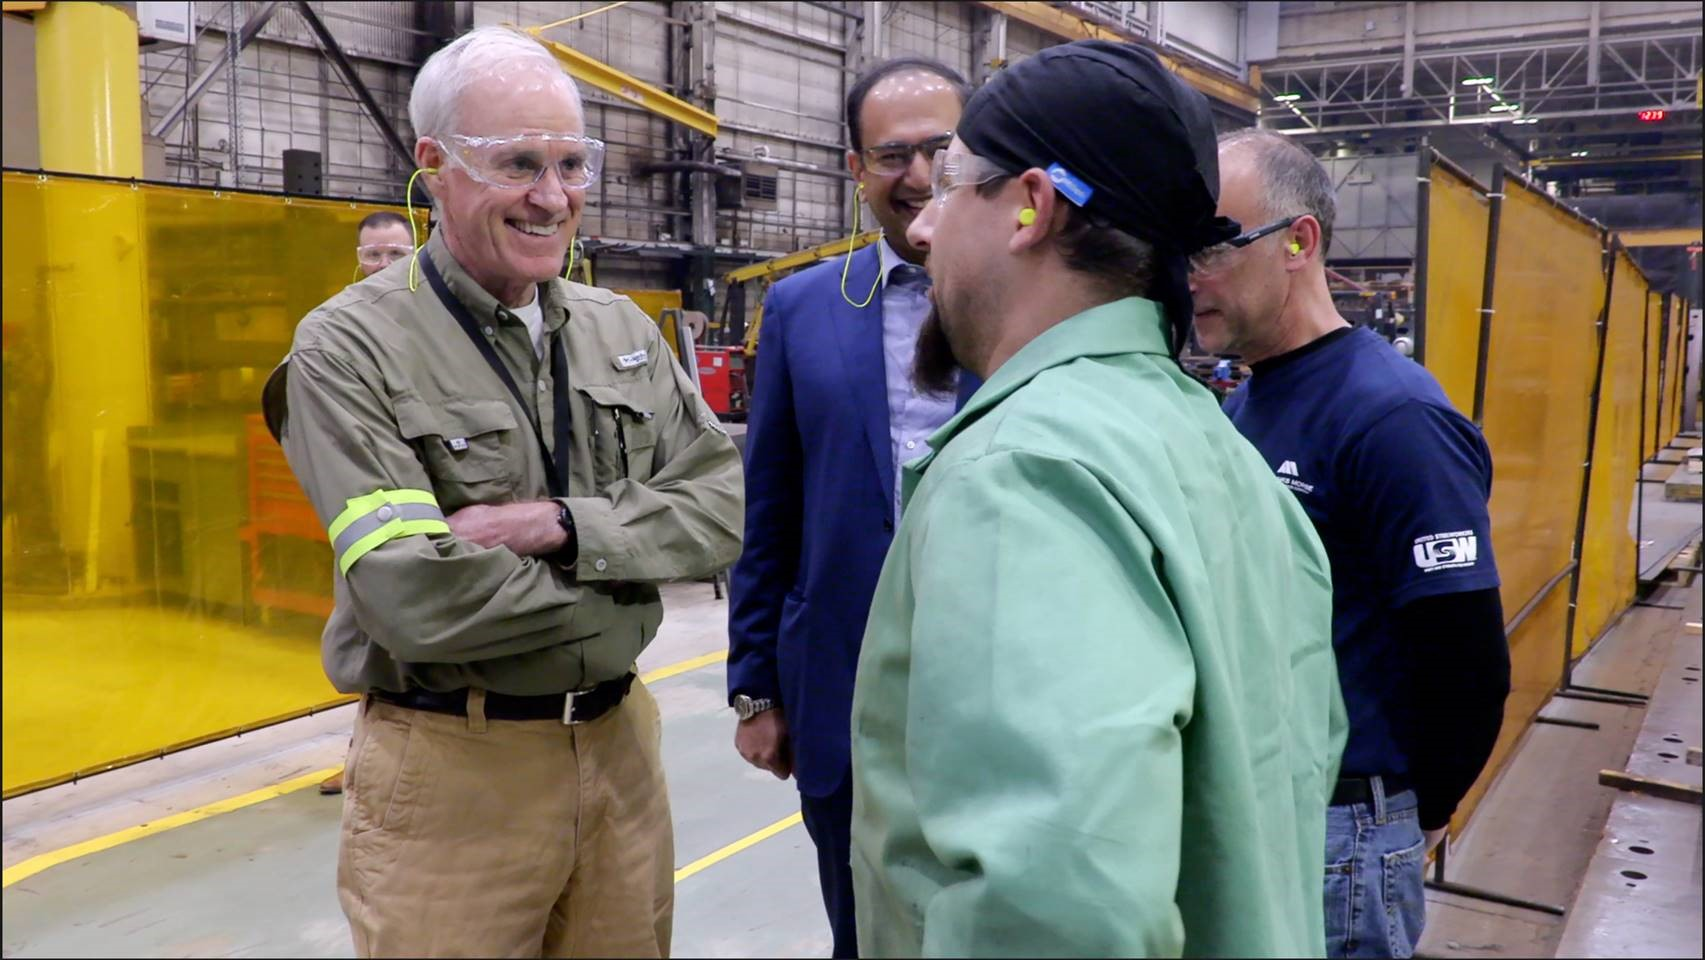 US Secretary of the Navy Honorable Richard V. Spencer Visits Fairbanks Morse's Beloit Facility